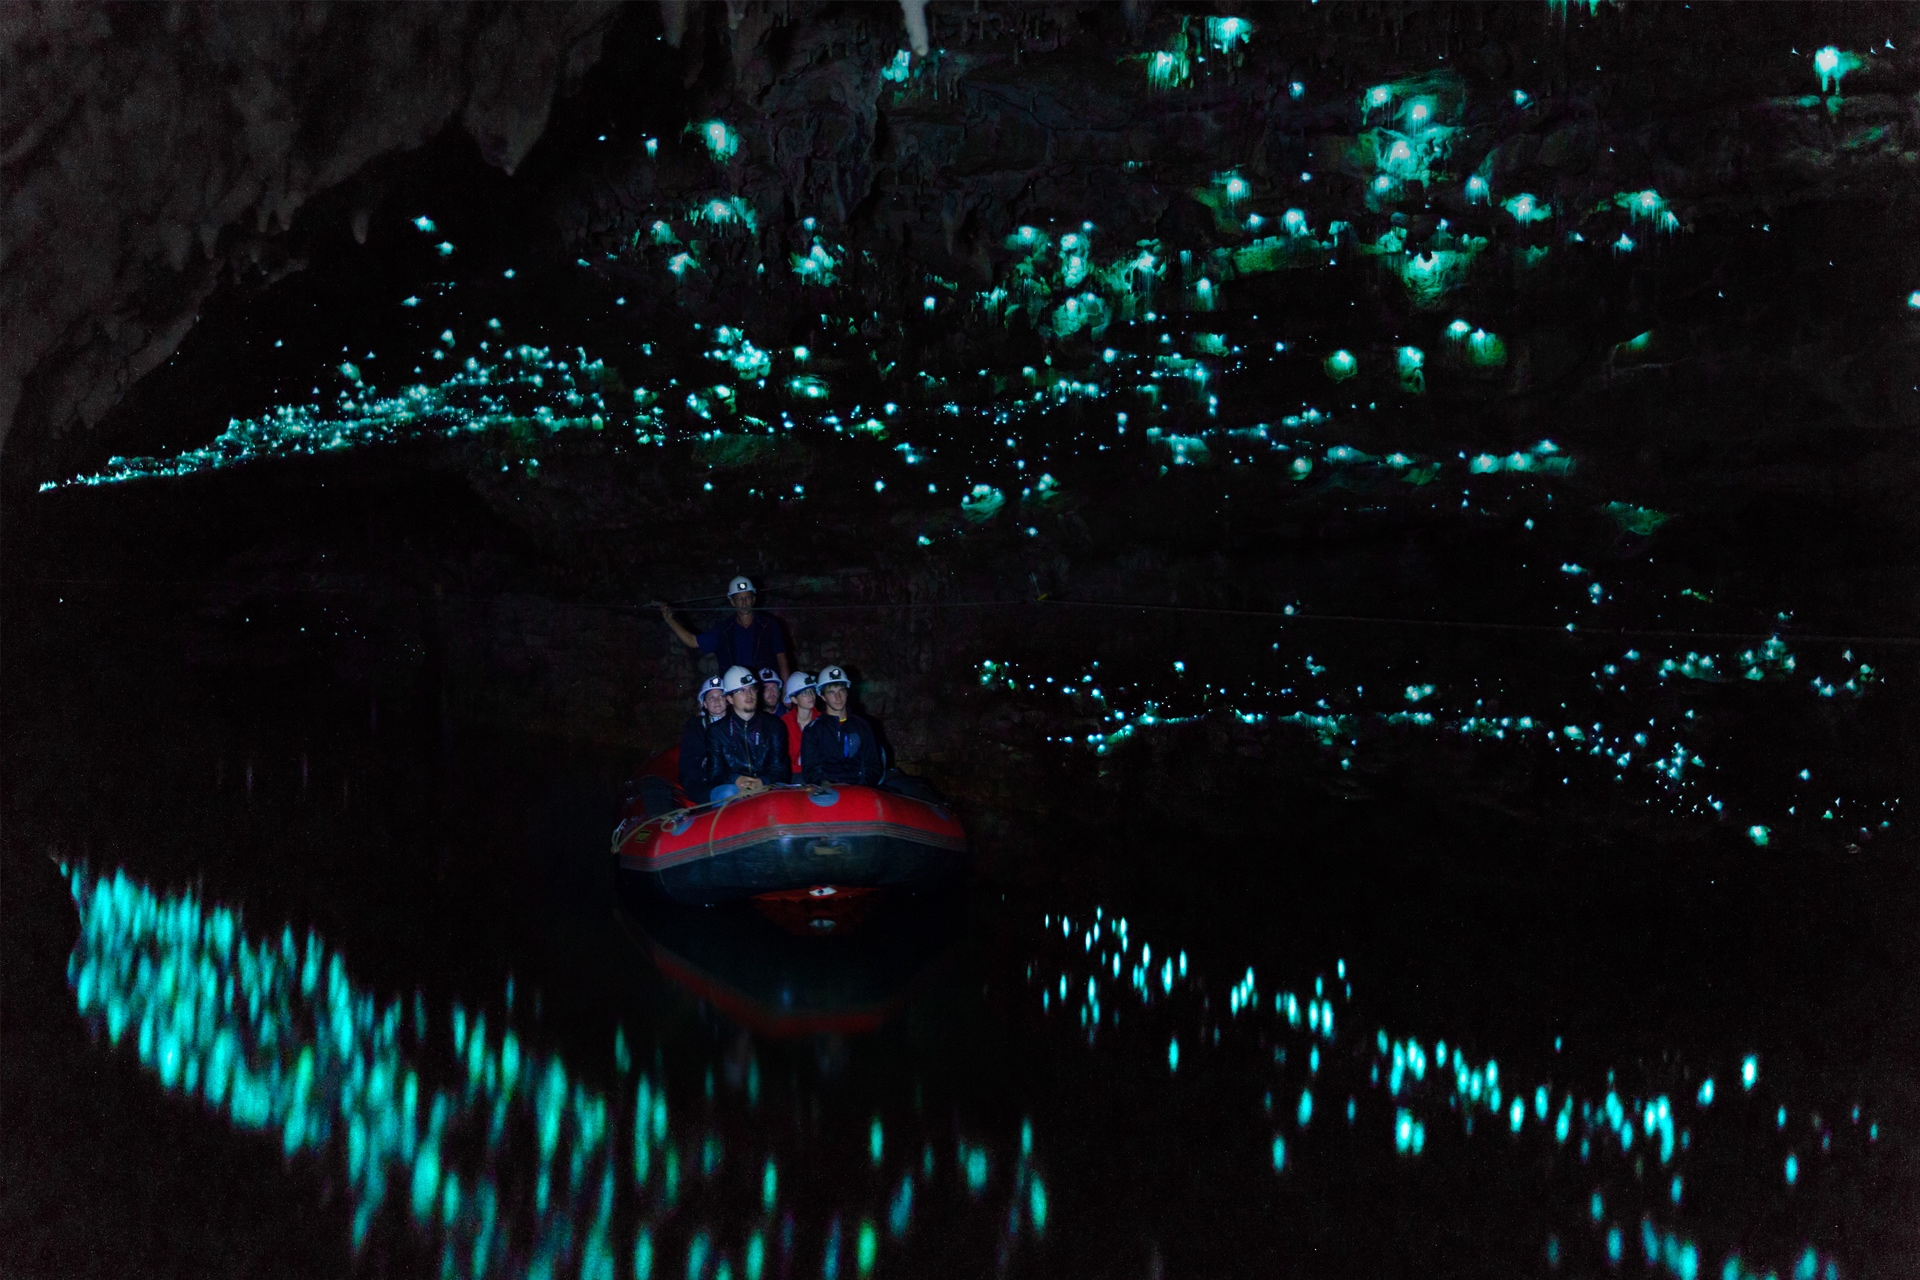 Waitomo Glowworm Caves: World's Coolest Places of 2019 | Time.com